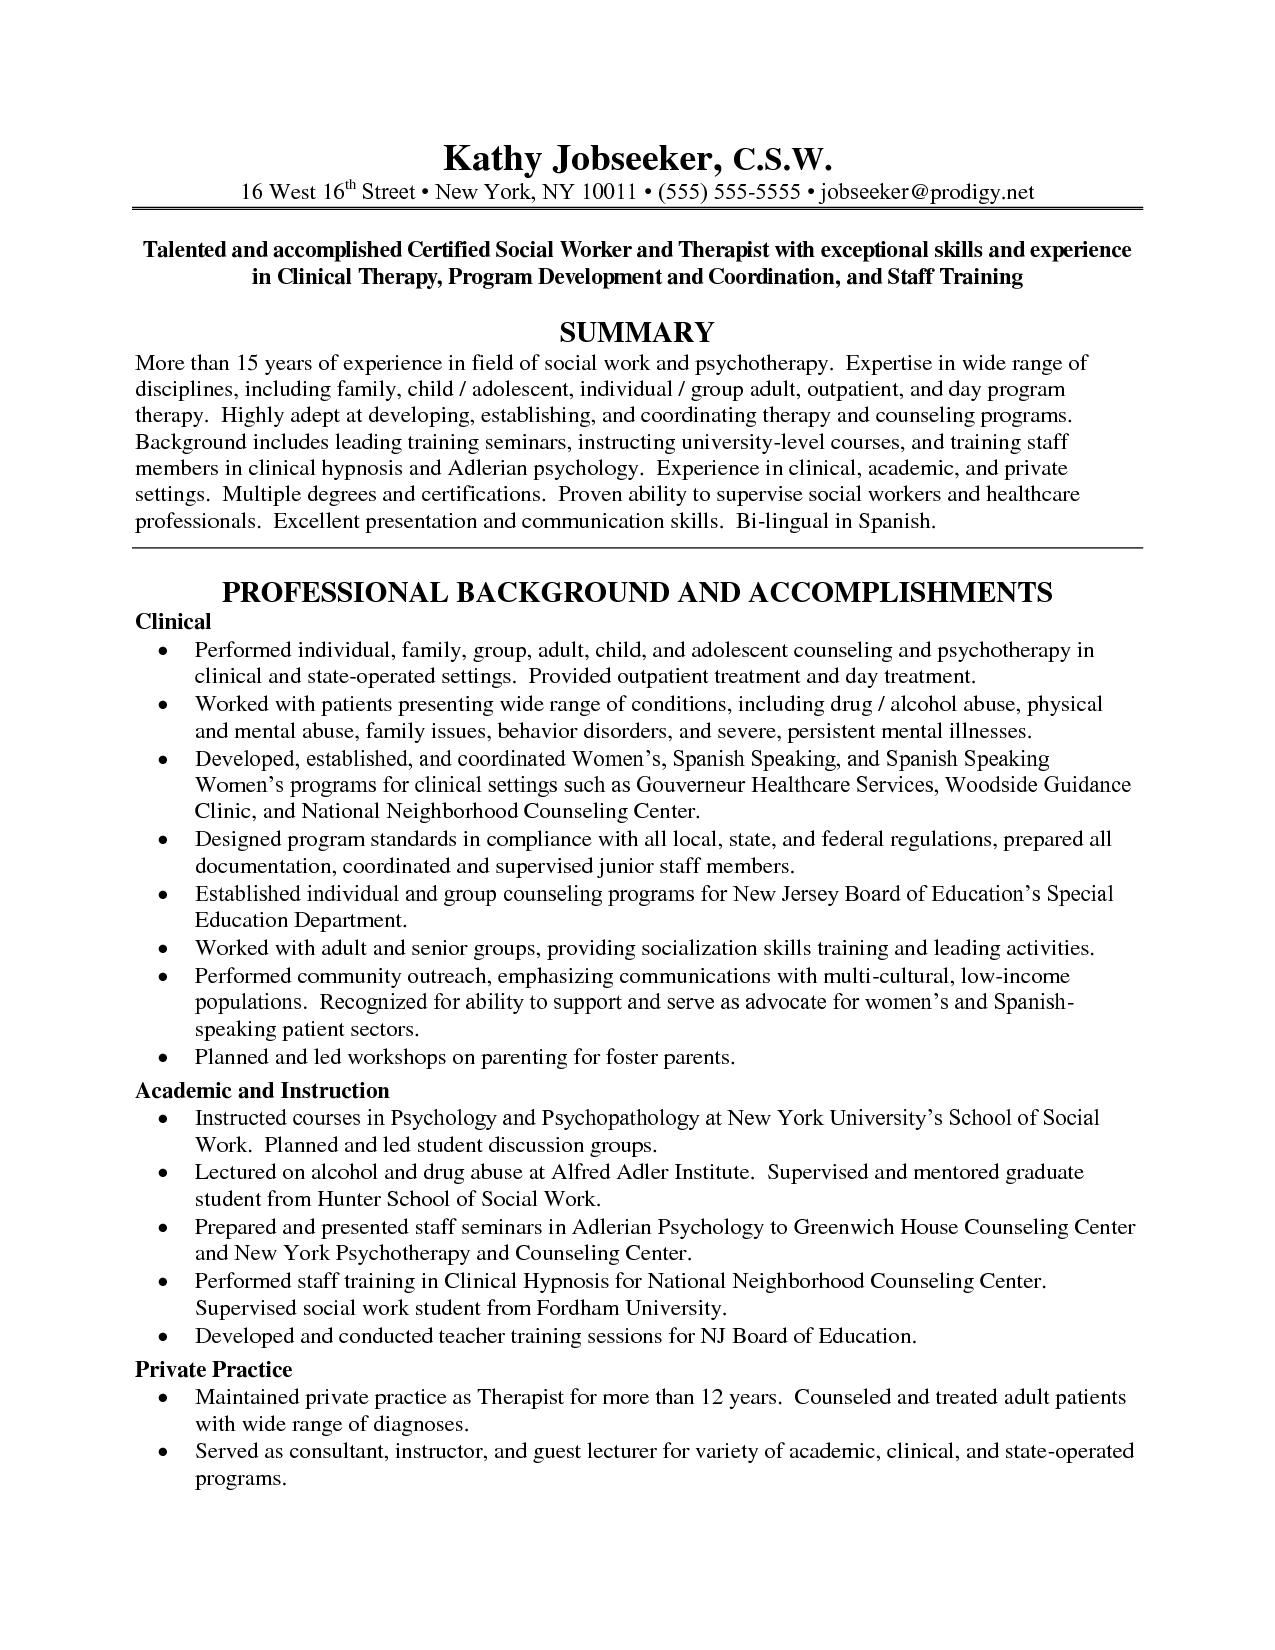 Skills For Job Resume Social Work Resume Examples Social Work Resume With License Social